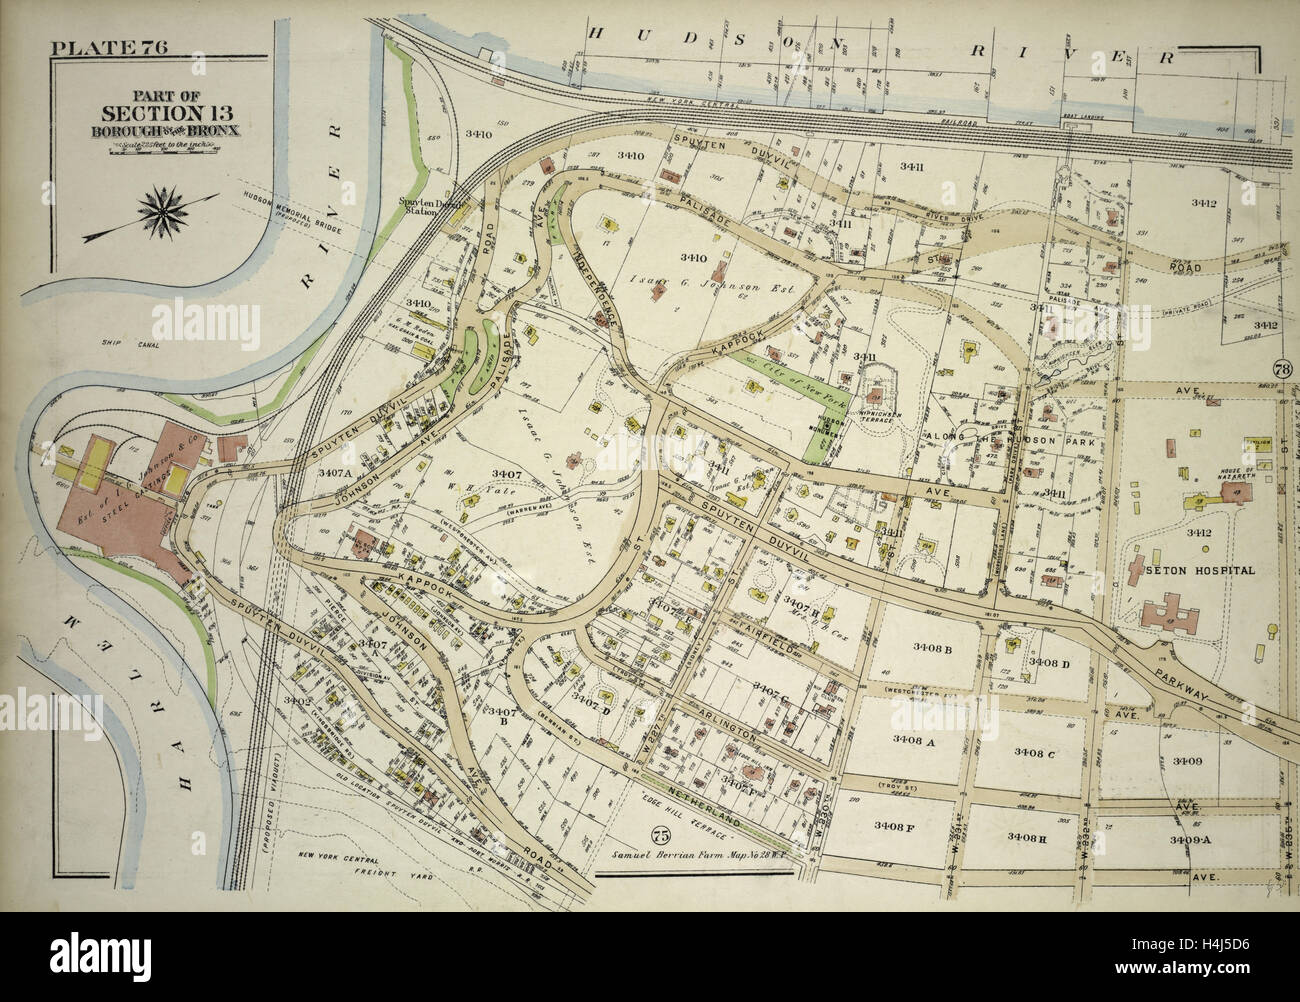 Plate 76, Part of Section 13, Borough of the Bronx. Bounded by Spuyten Duyvil Road, W. 235th Street, Netherland - Stock Image